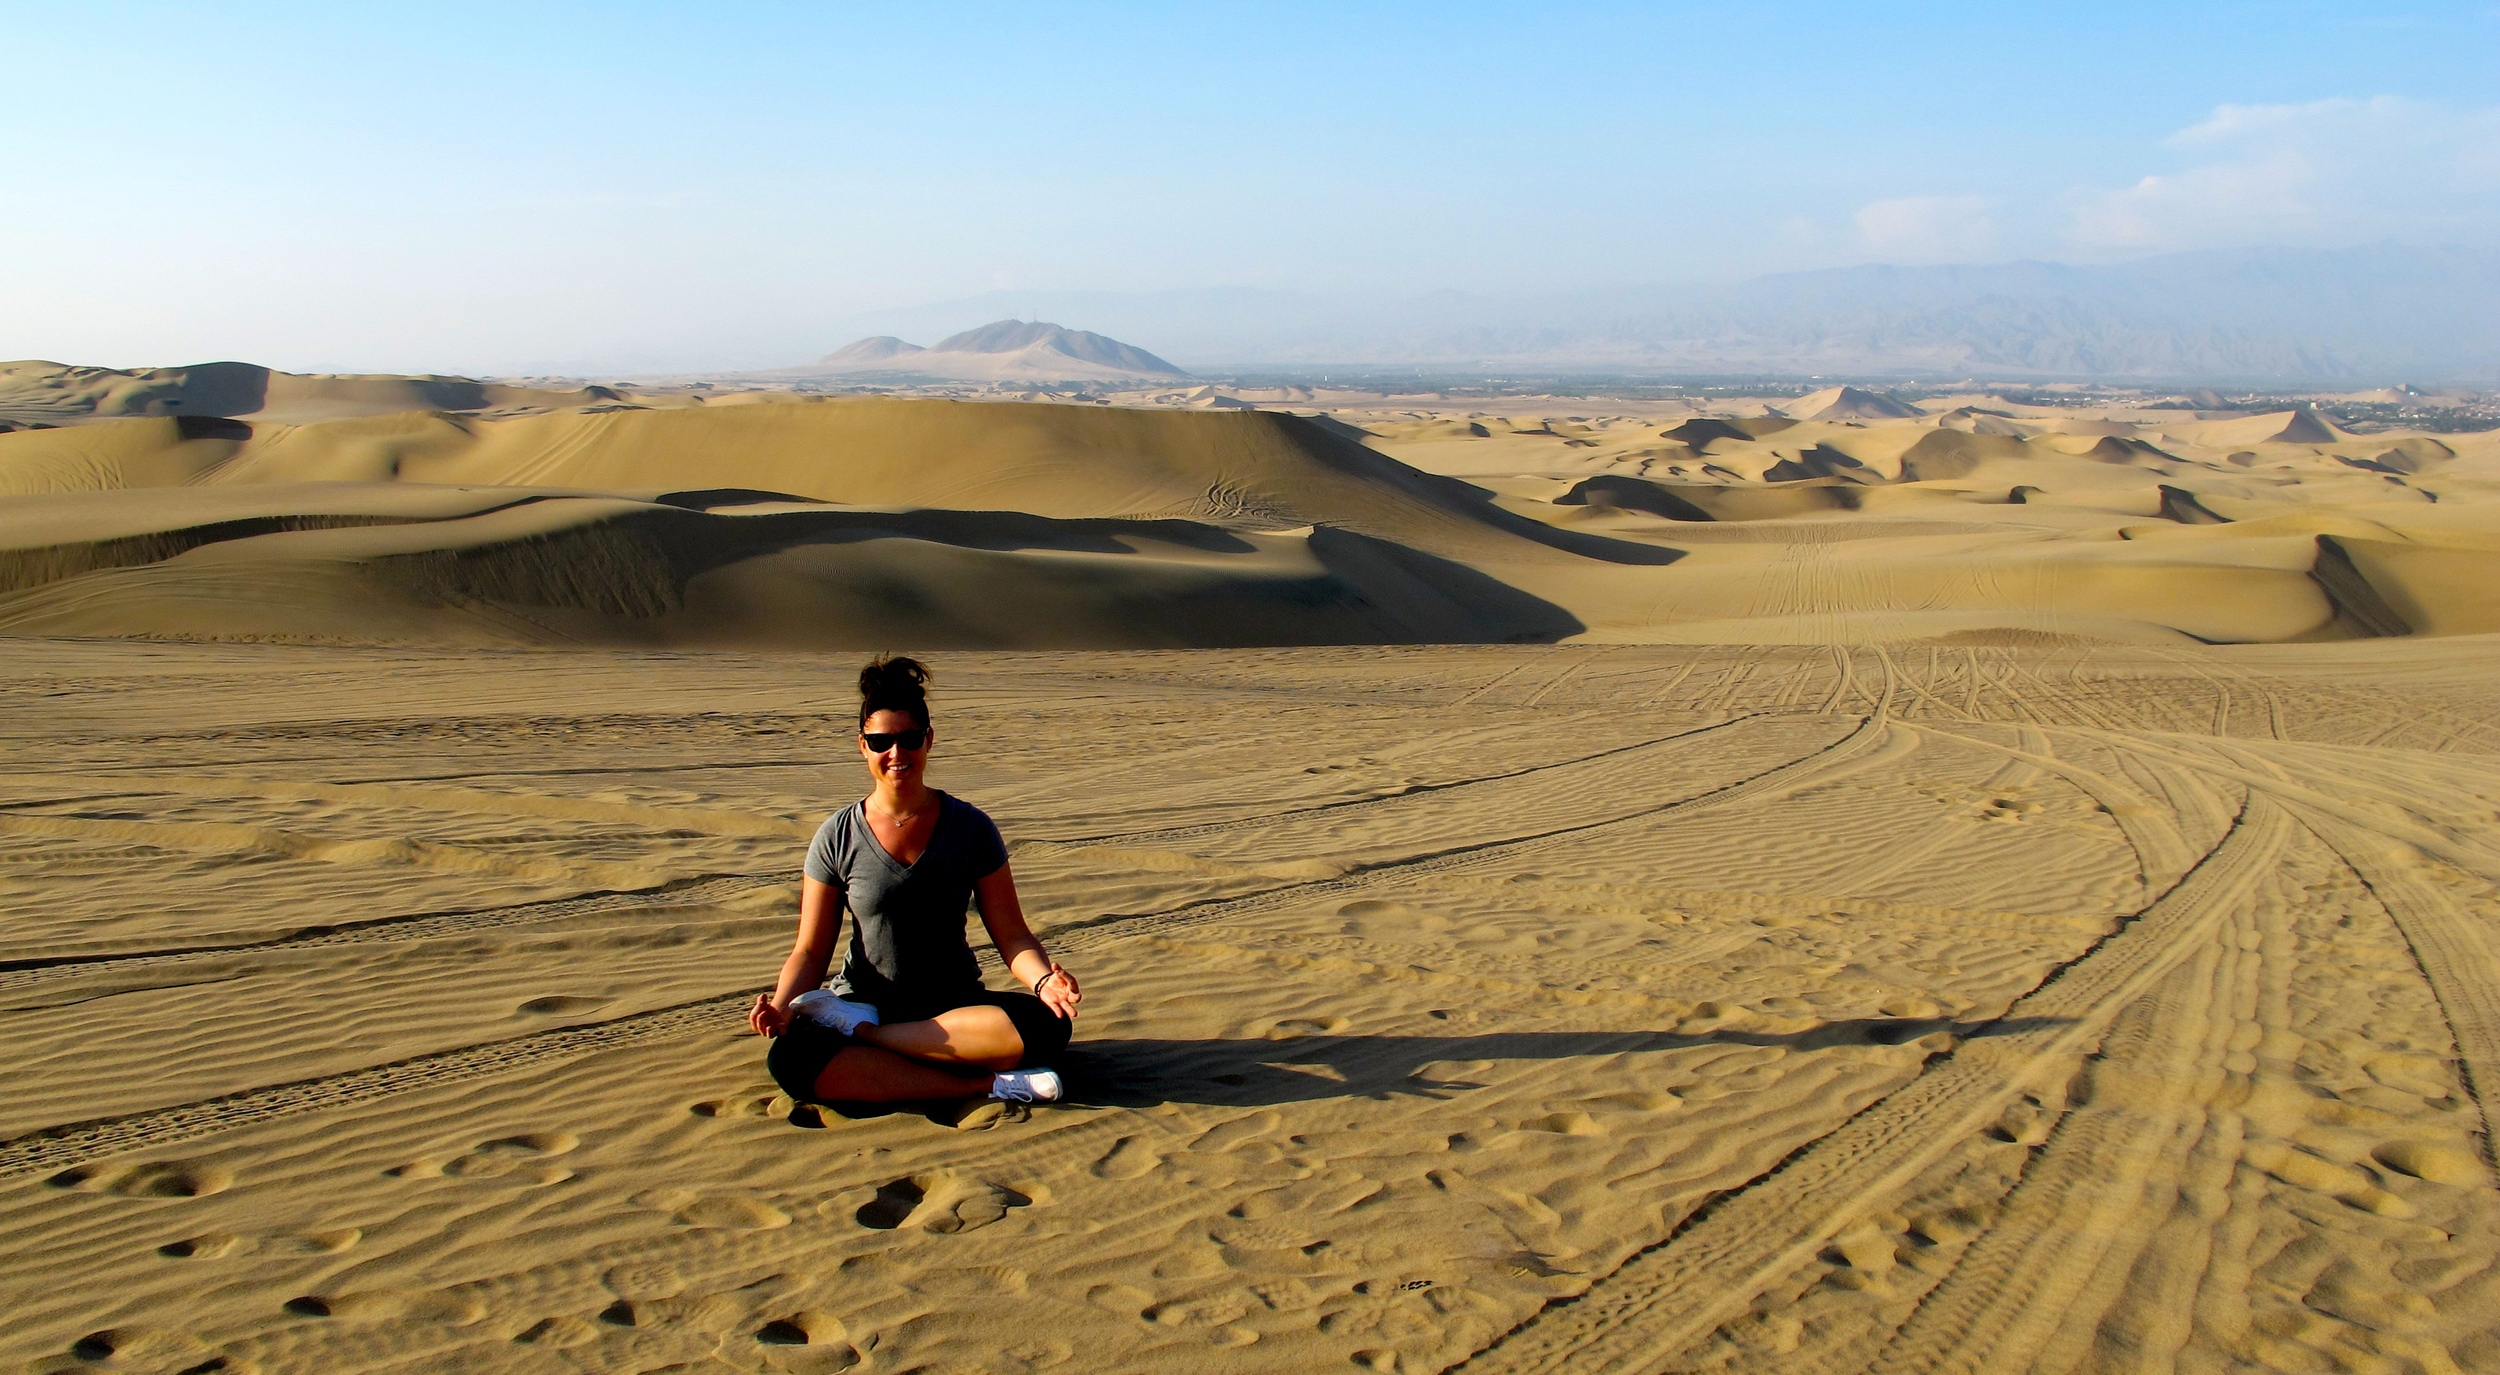 Hanging out in the dunes of Peru near the Huachachina Oasis. 2012.